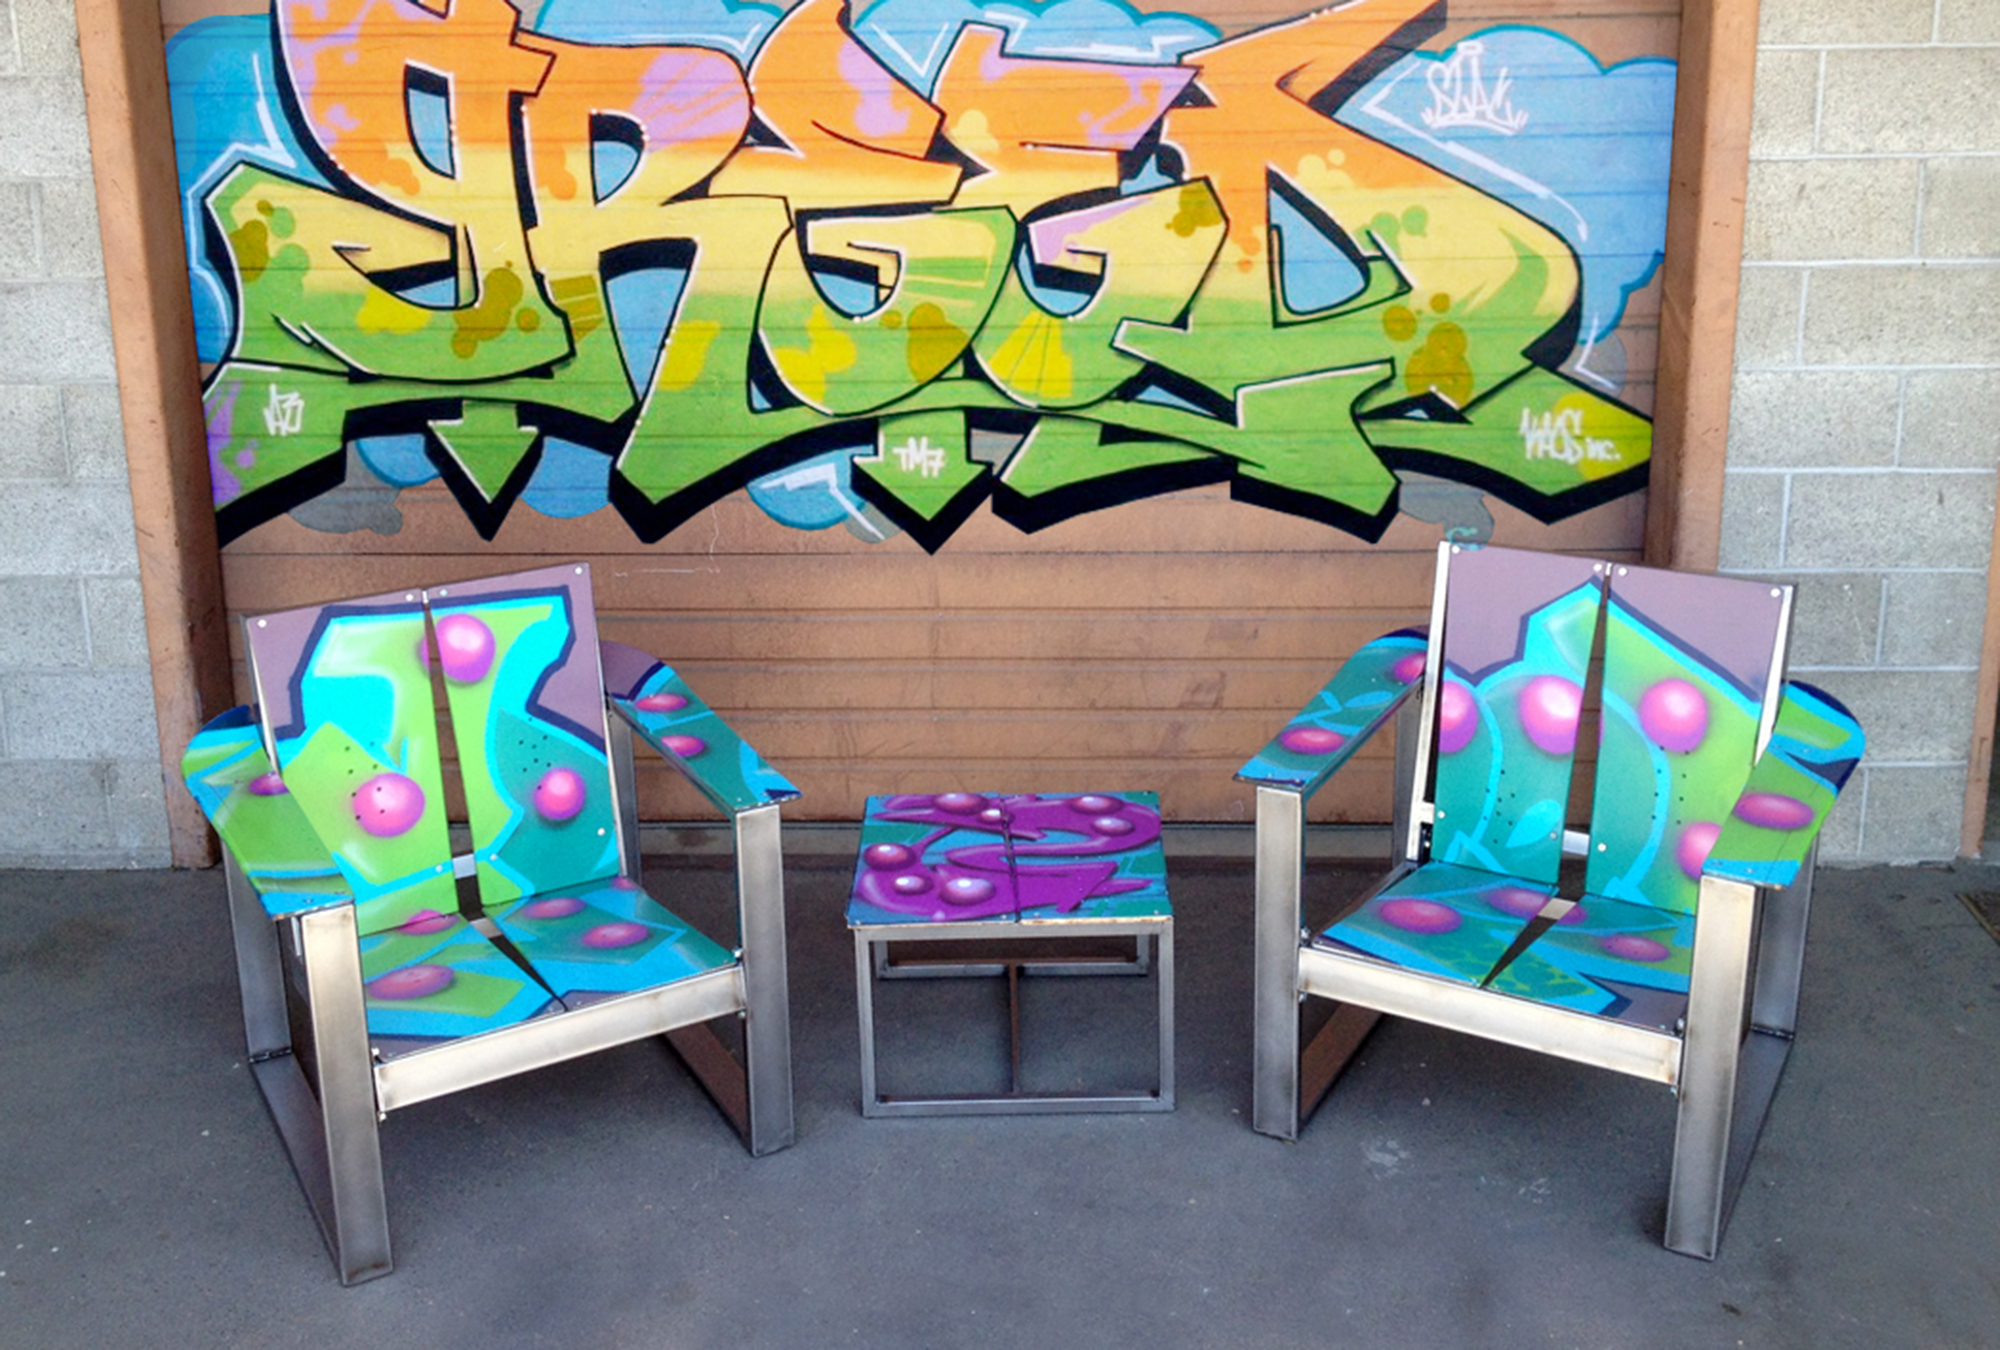 greed graffiti upcycled snowboard chairs